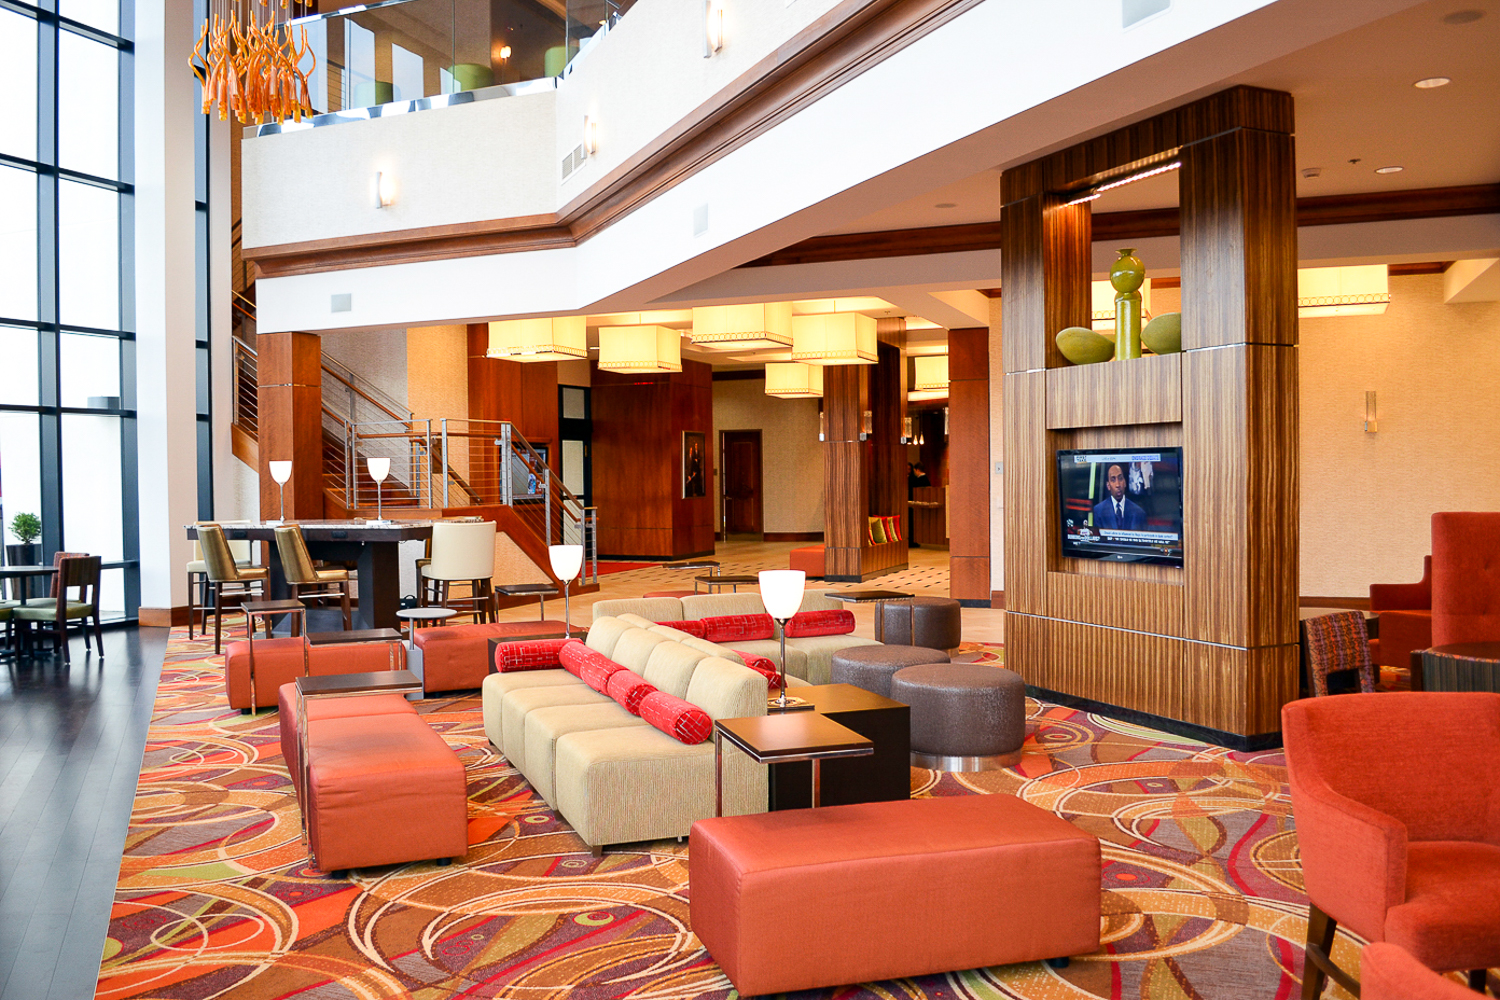 Marriott in Memphis, Tn - Redevelopment Hospitality Hotel Design Construction-2.jpg